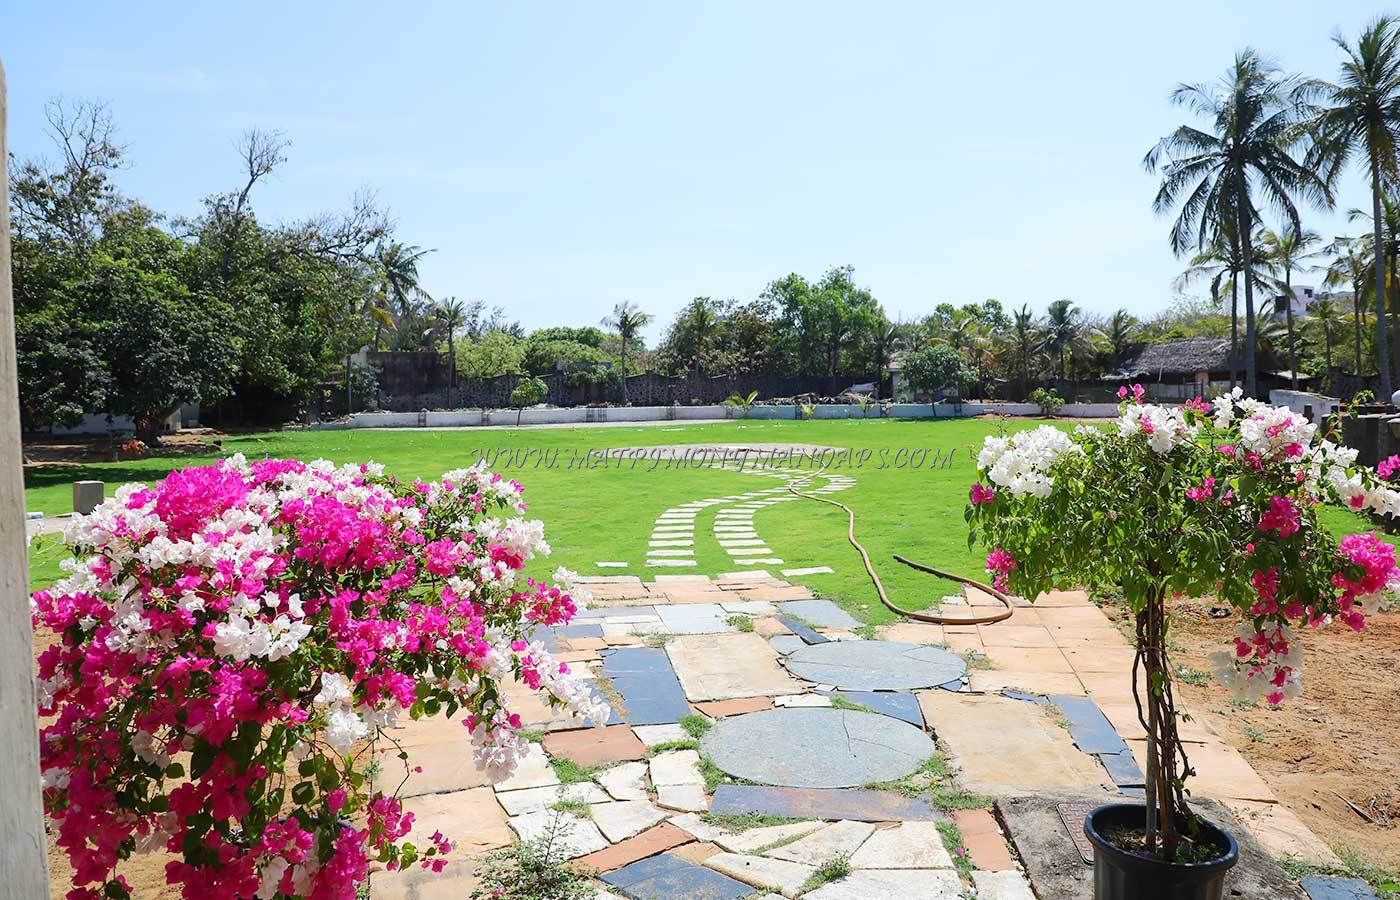 Find the availability of the Vaibhav Villa Eden Garden in Injambakkam, Chennai and avail special offers